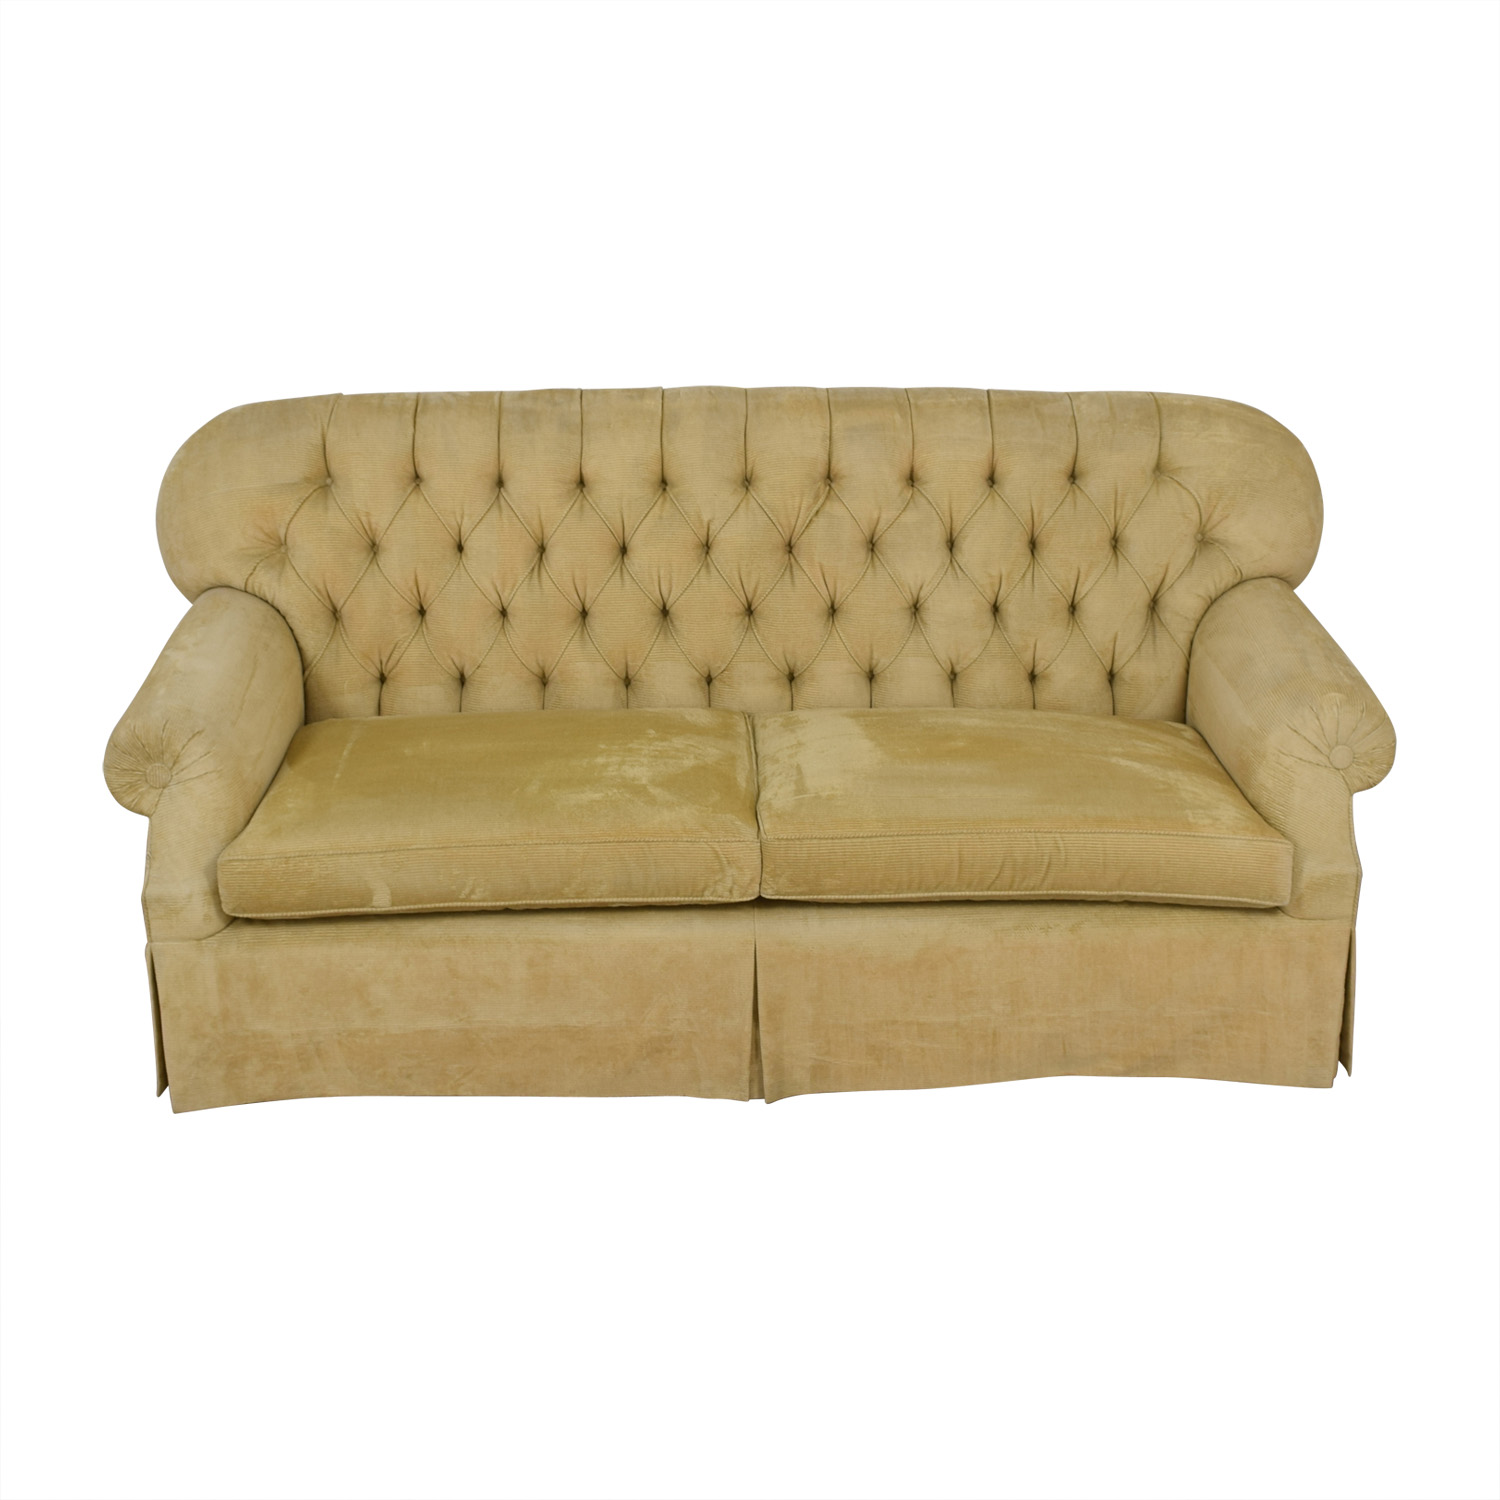 Furniture Masters Beige Tufted Two-Cushion Sofa / Classic Sofas